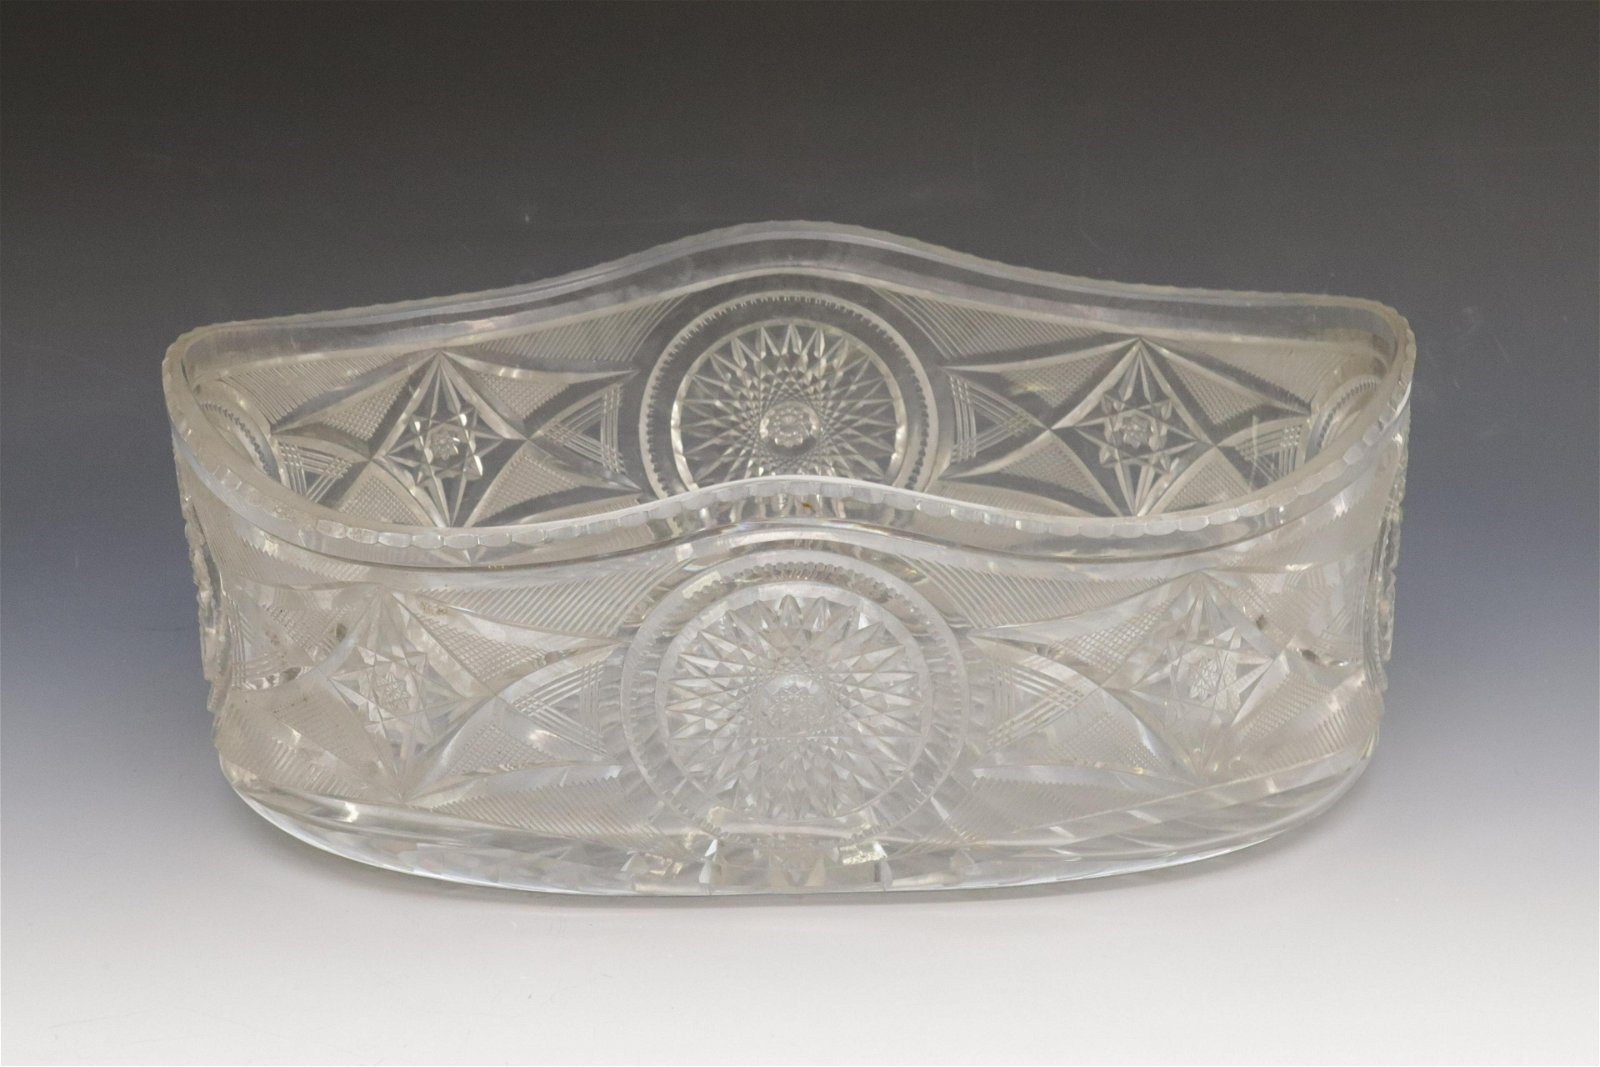 LARGE CUT GLASS CENTER BOWL